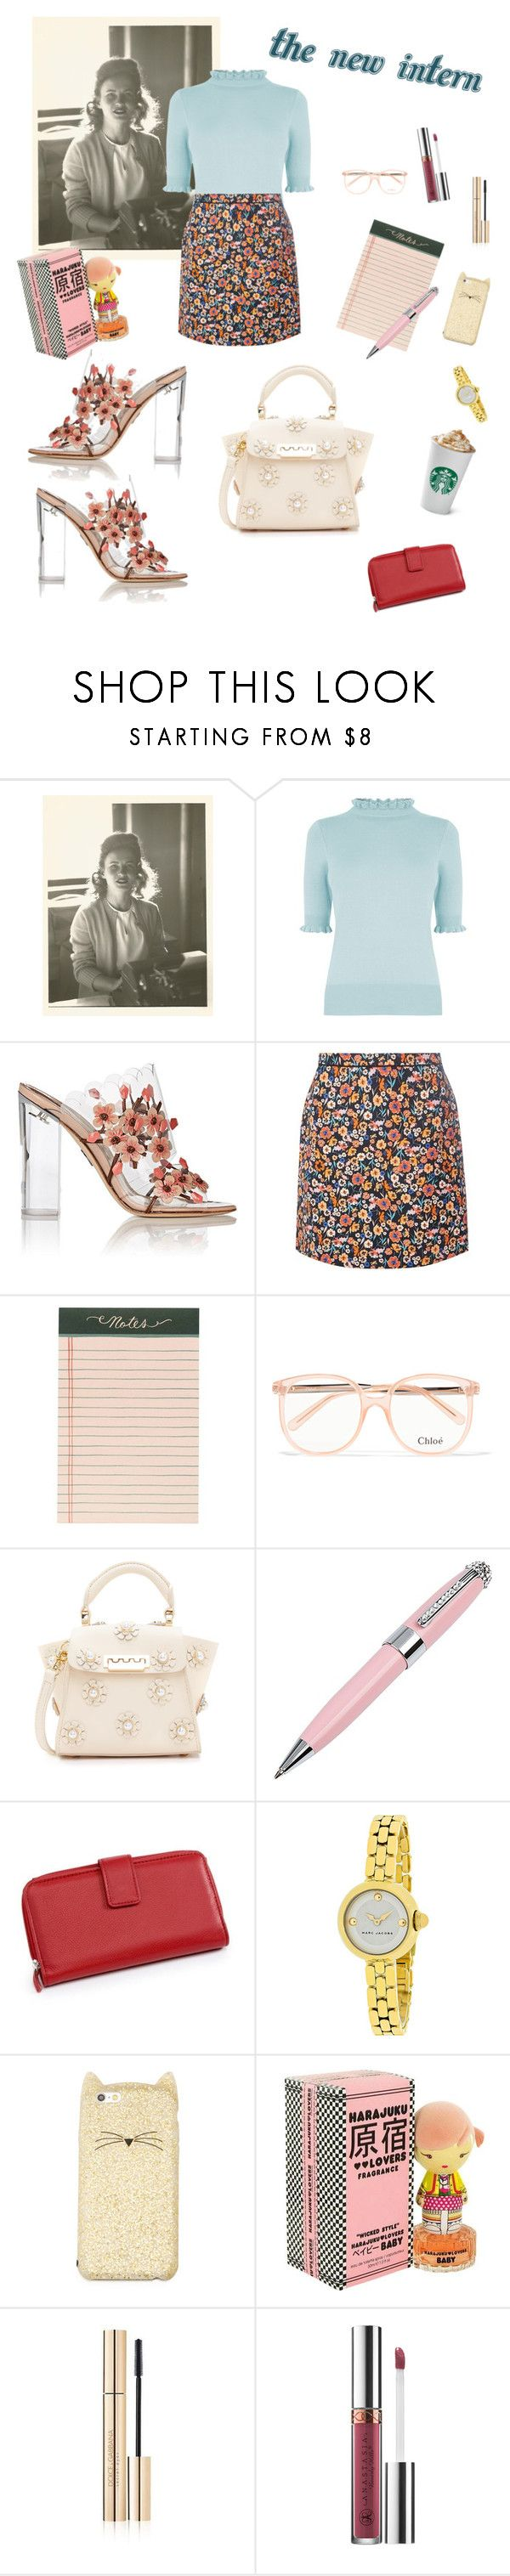 """""""The New Intern"""" by owlenstar on Polyvore featuring Oasis, Paul Andrew, Dorothy Perkins, Rifle Paper Co, Chloé, ZAC Zac Posen, ICE London, Kim Rogers, Kate Spade and Harajuku Lovers"""